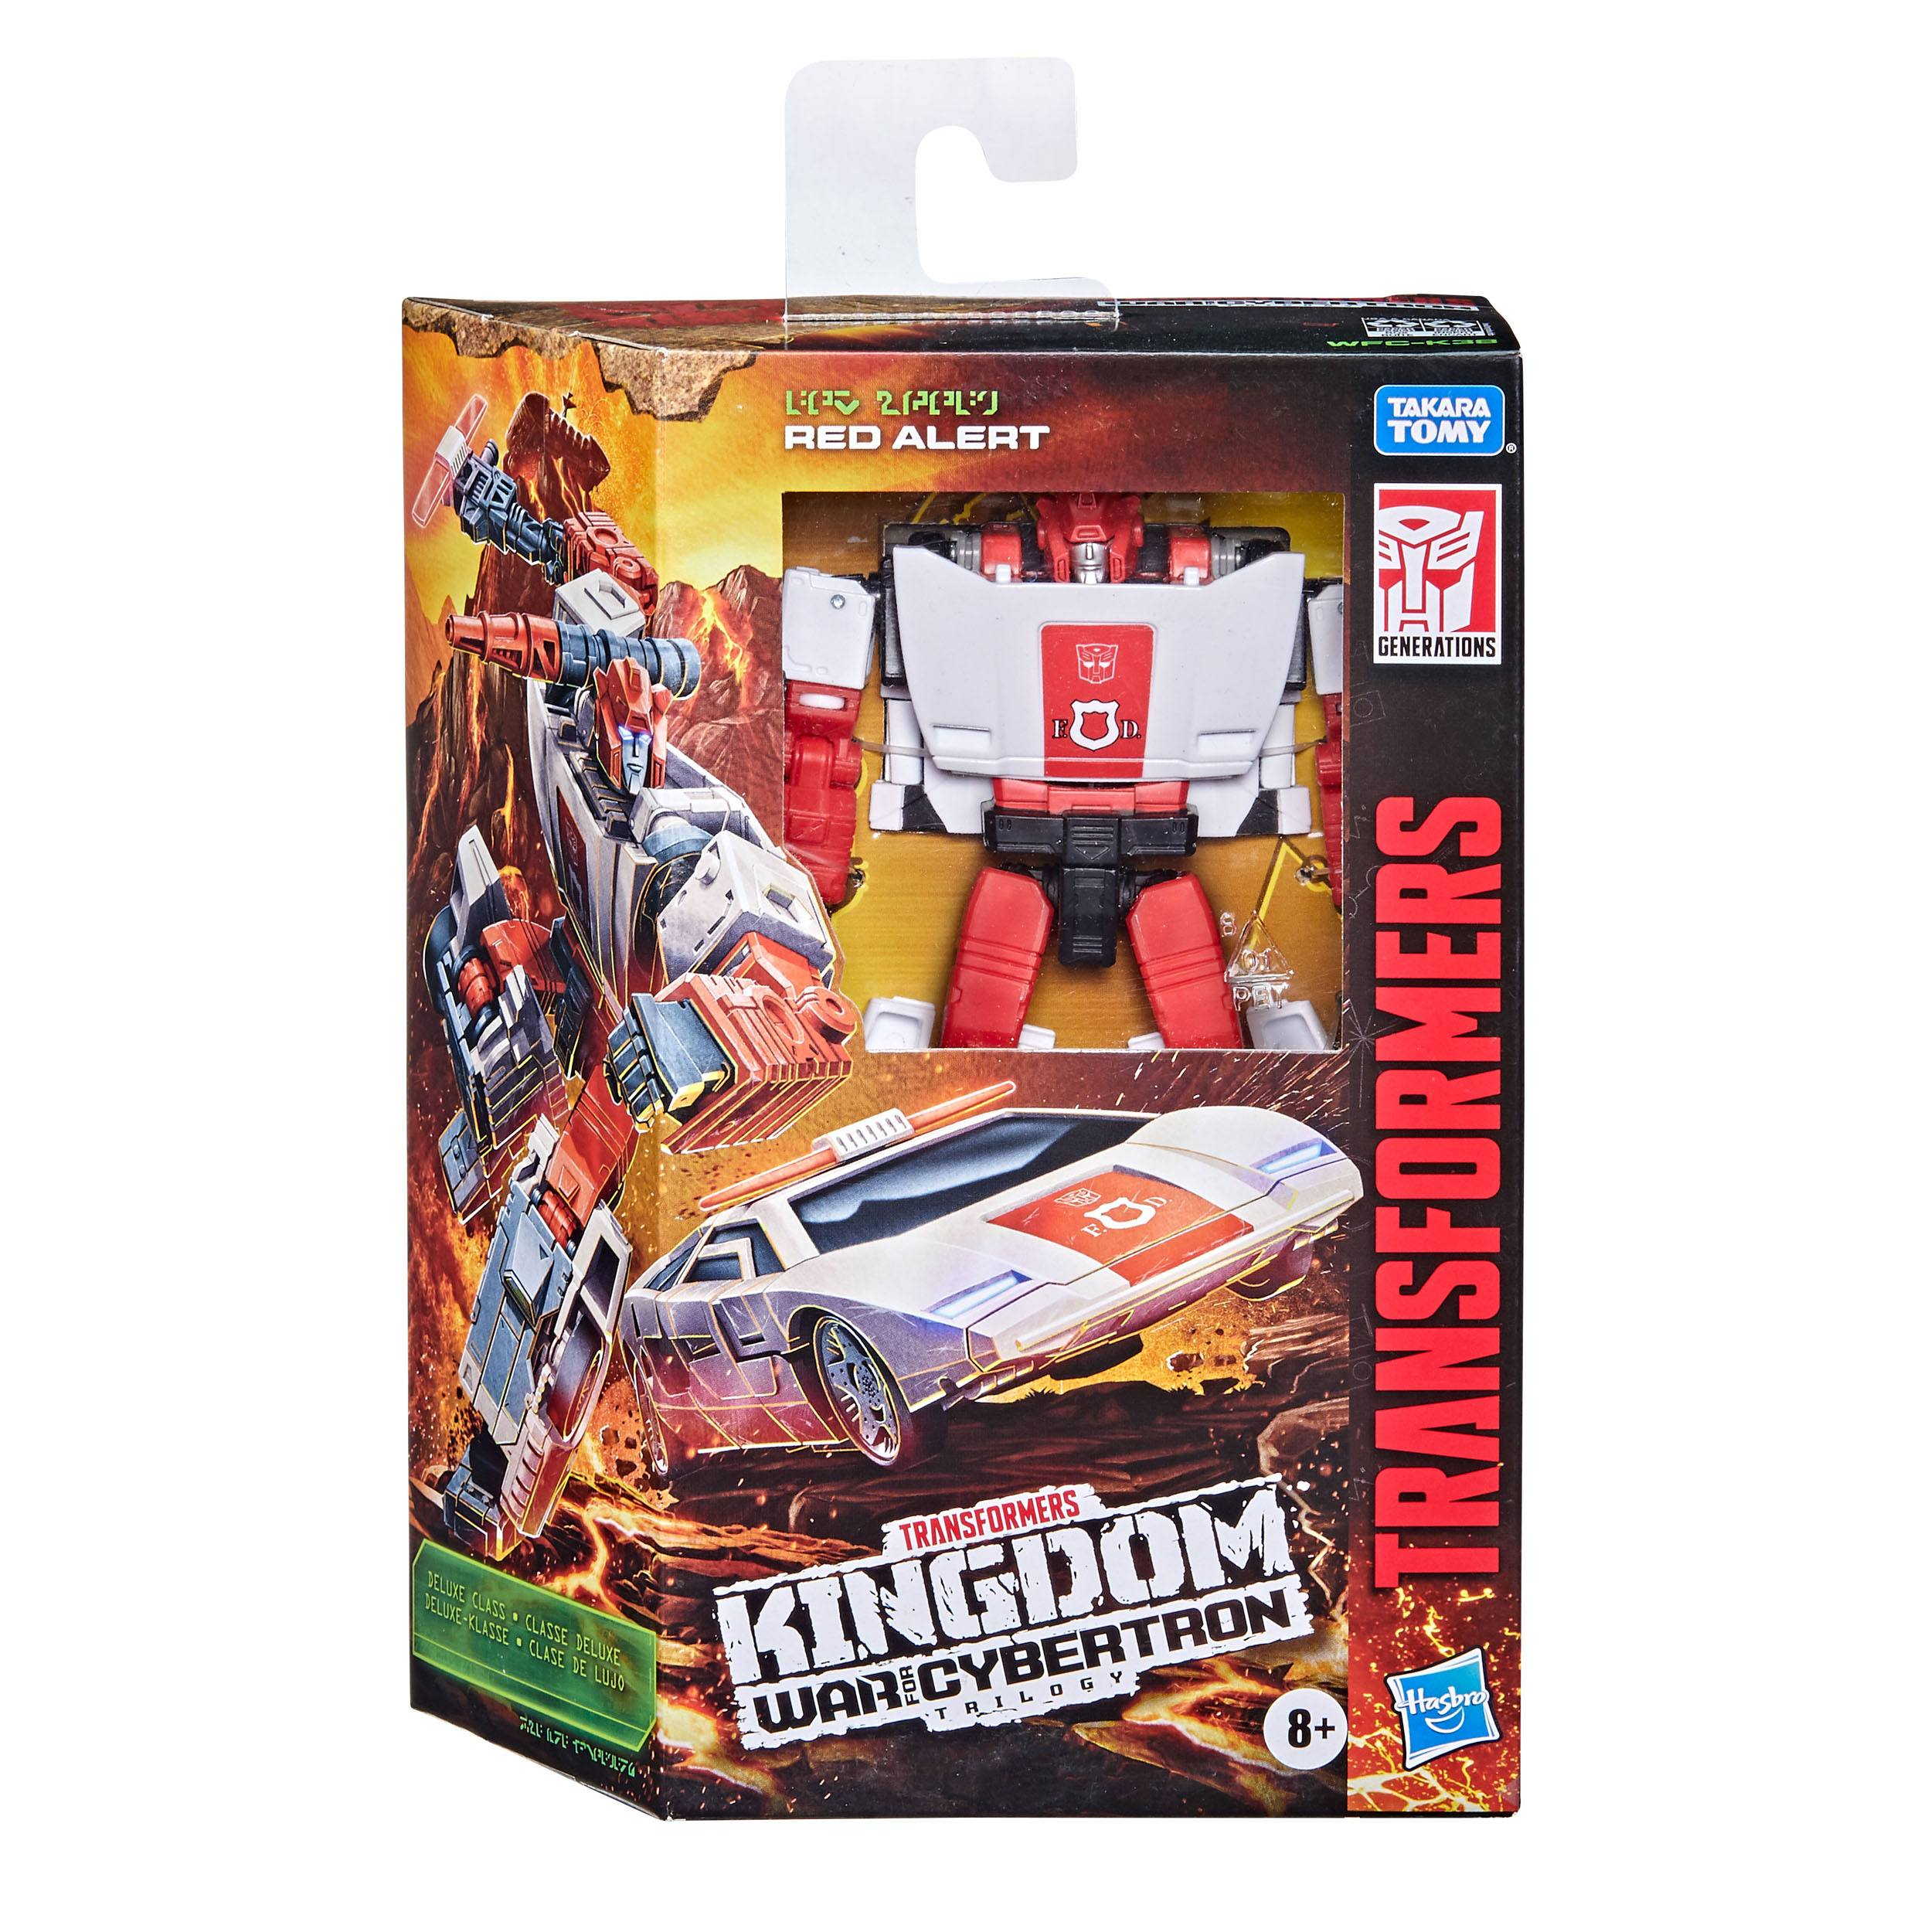 Transformers Generations War For Cybertron: Kingdom Deluxe Class Actionfigur 2021 Red Alert 14 cm HASF1625 5010993855070